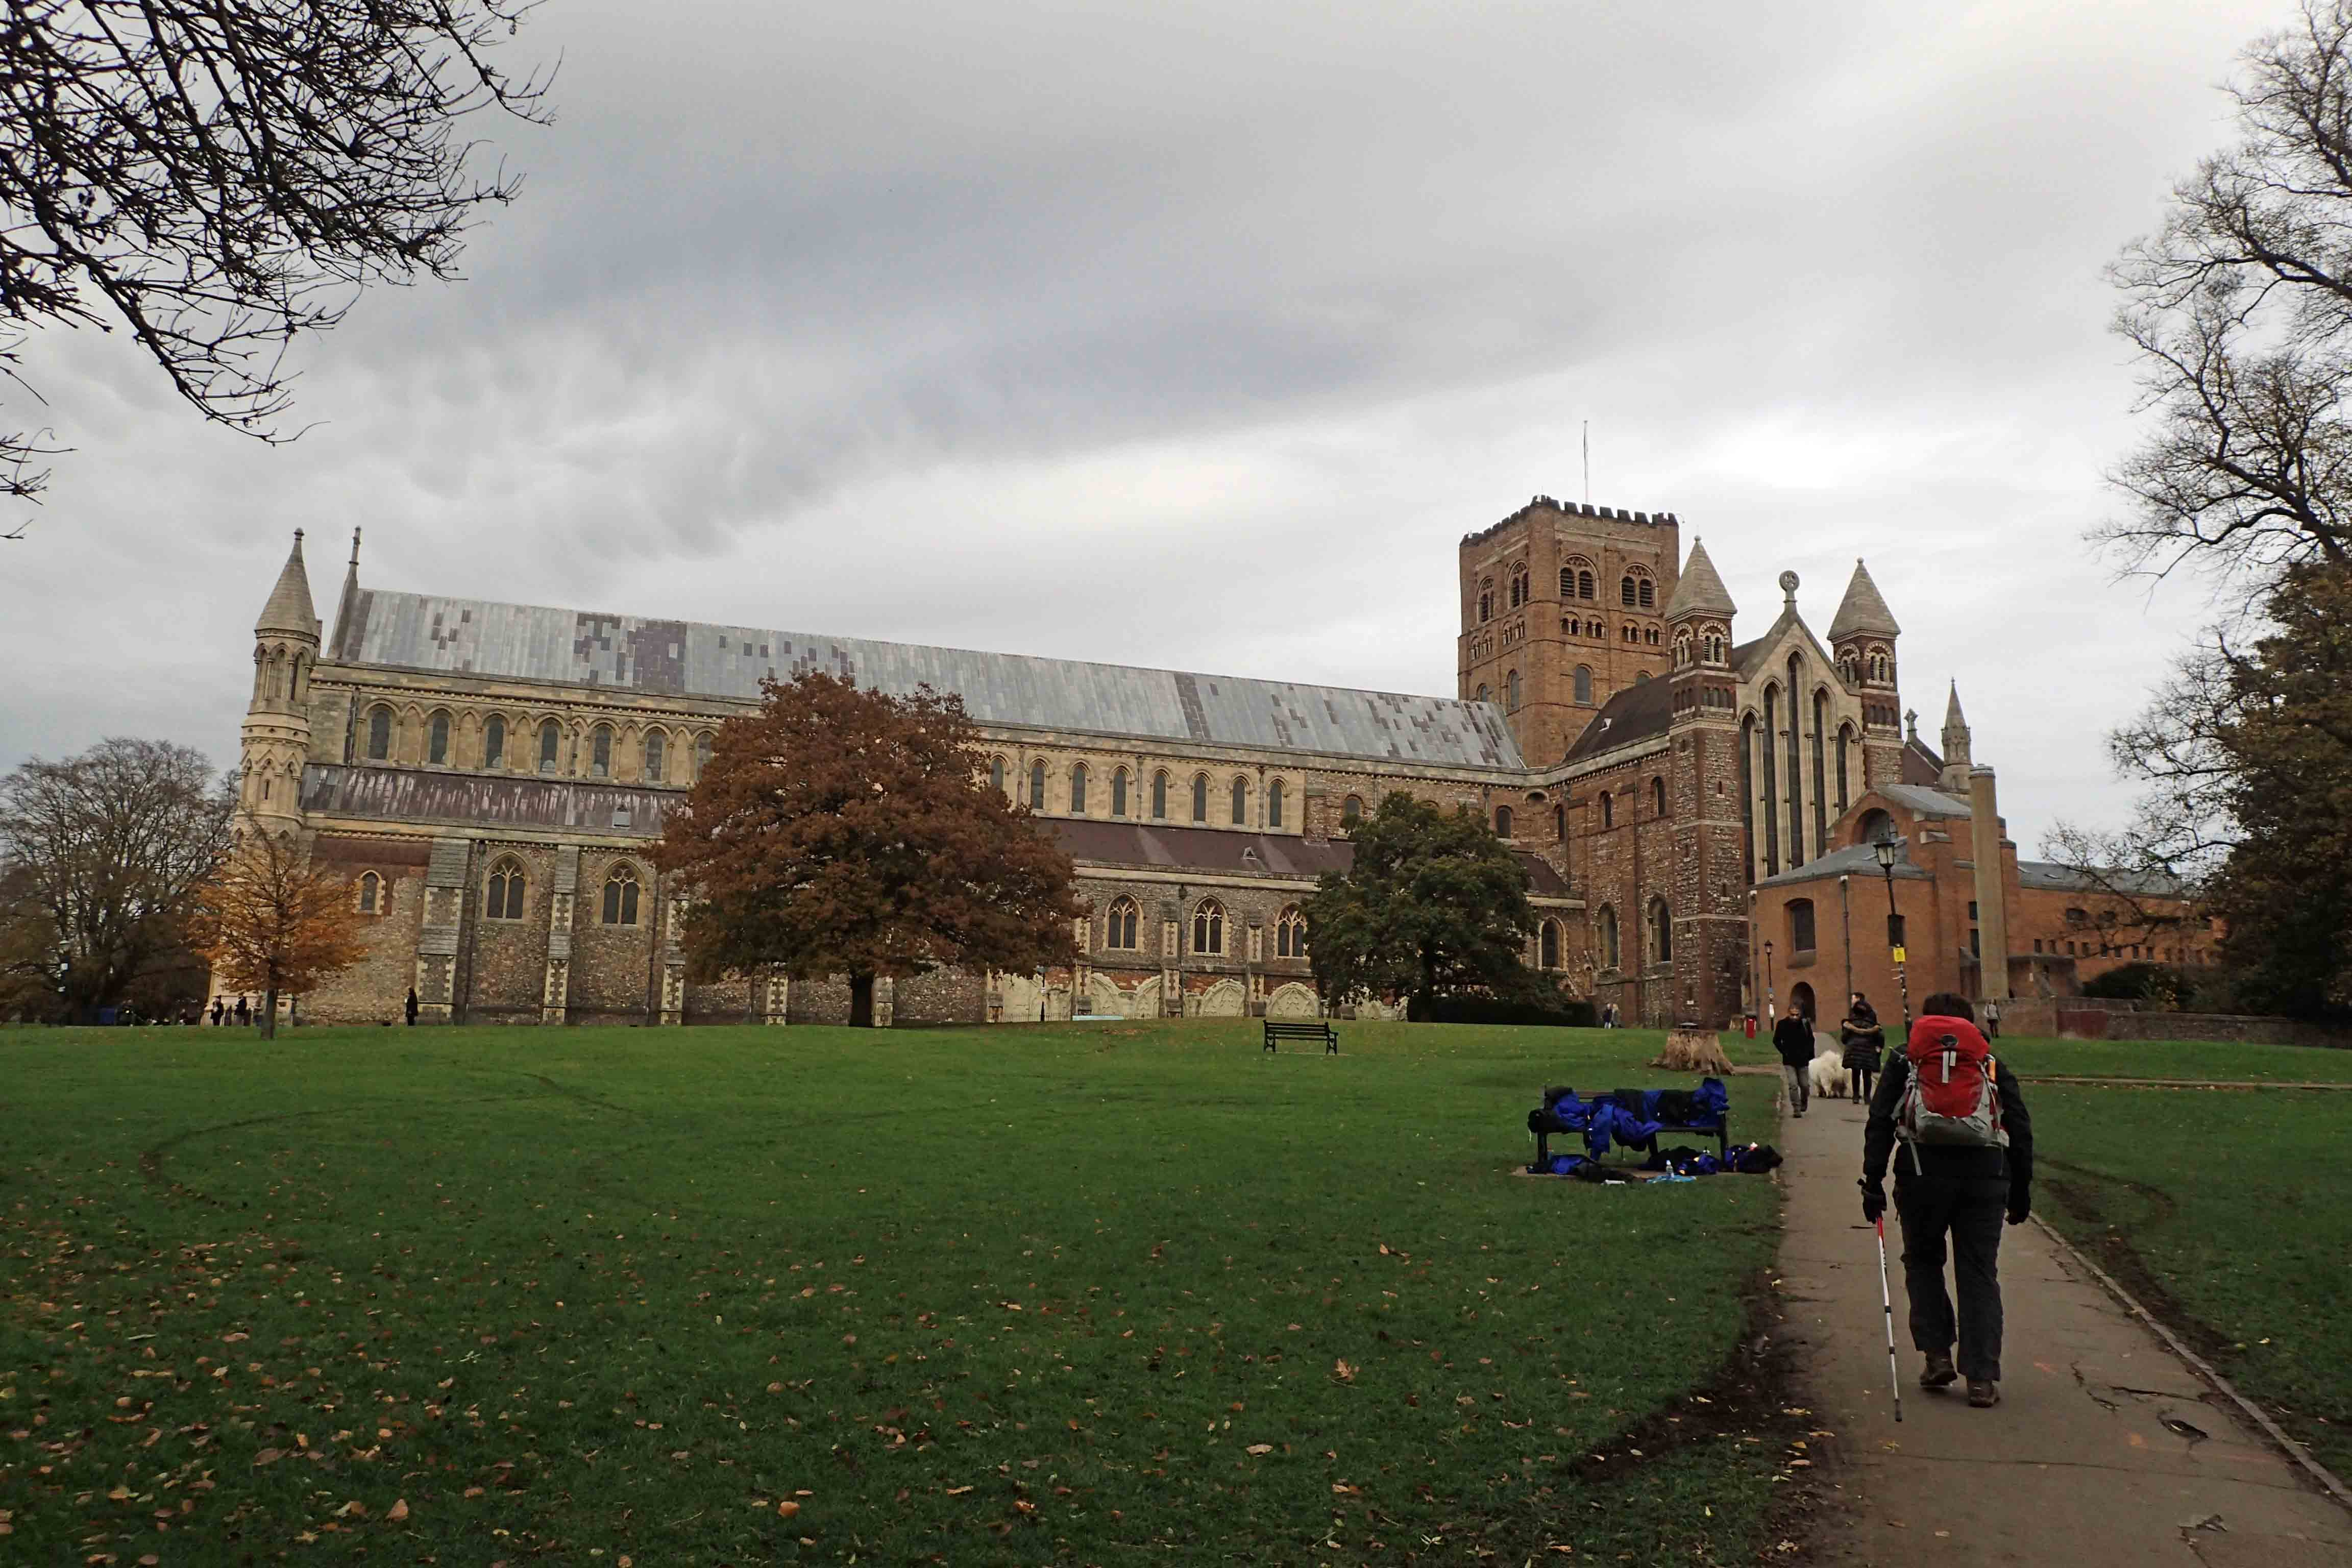 Taking time off to explore The Cathedral and Abbey Church of St. Alban- the site of the execution of England's first Christian martyr in 209